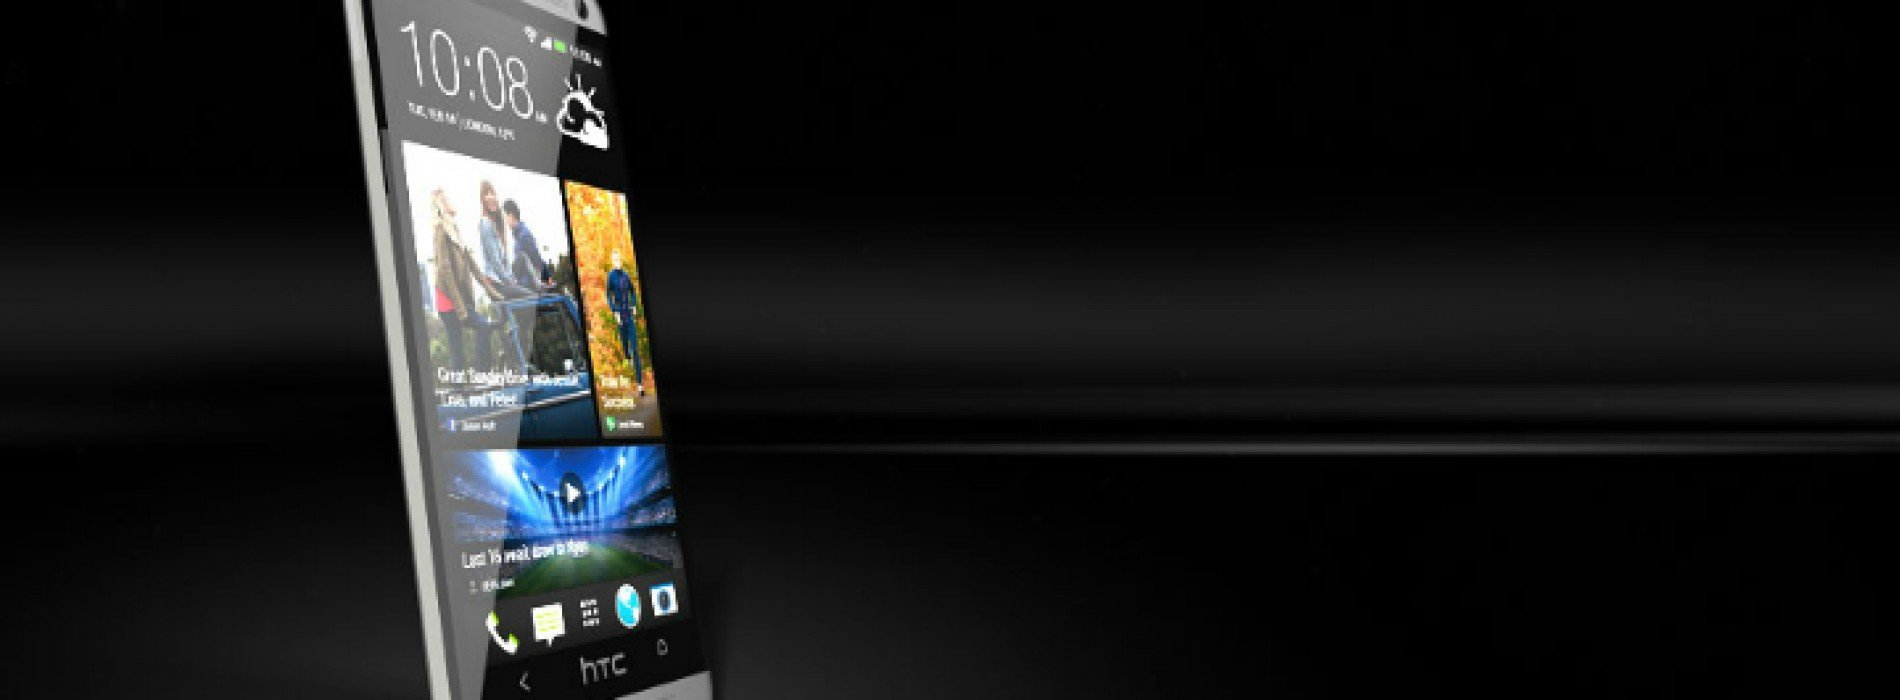 "HTC: The HTC One to hit U.S. ""before end of April"""